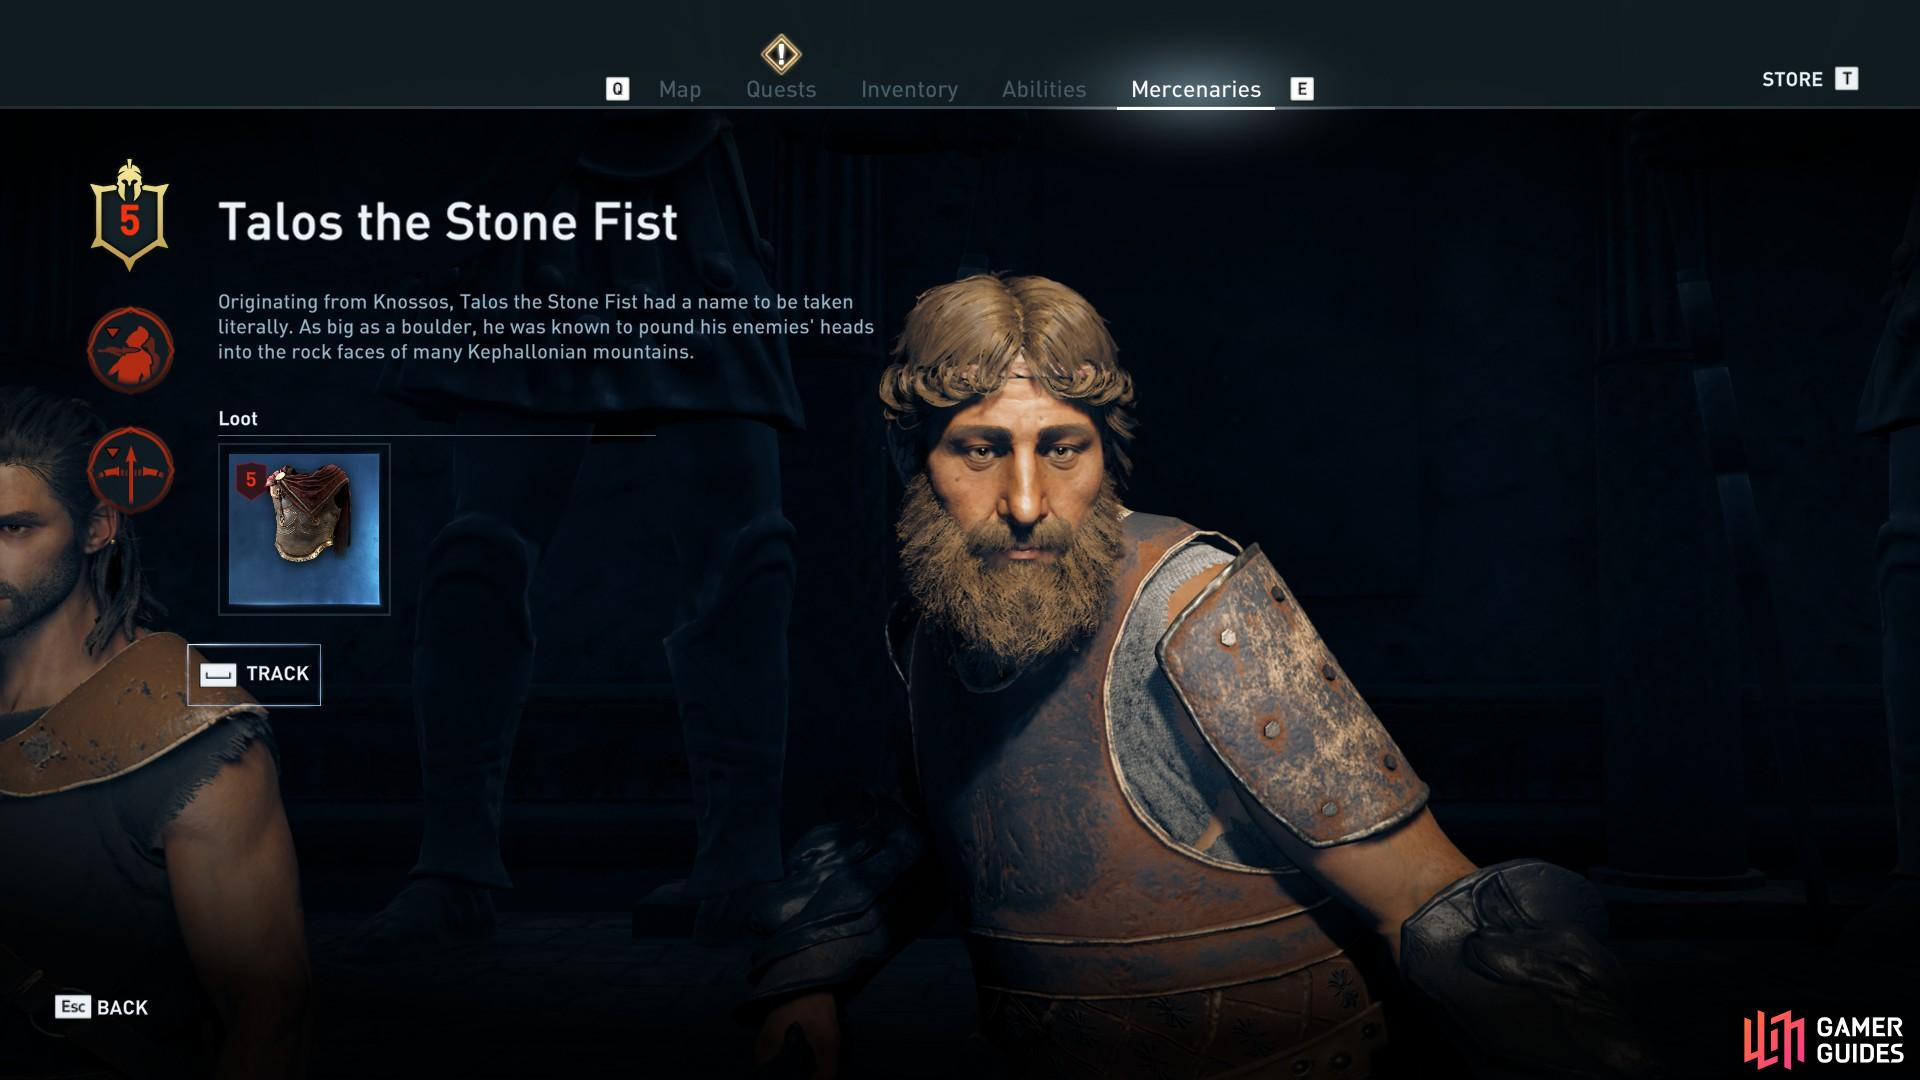 Enter the 'Mercenaries' menu to inspect Talos and track him.